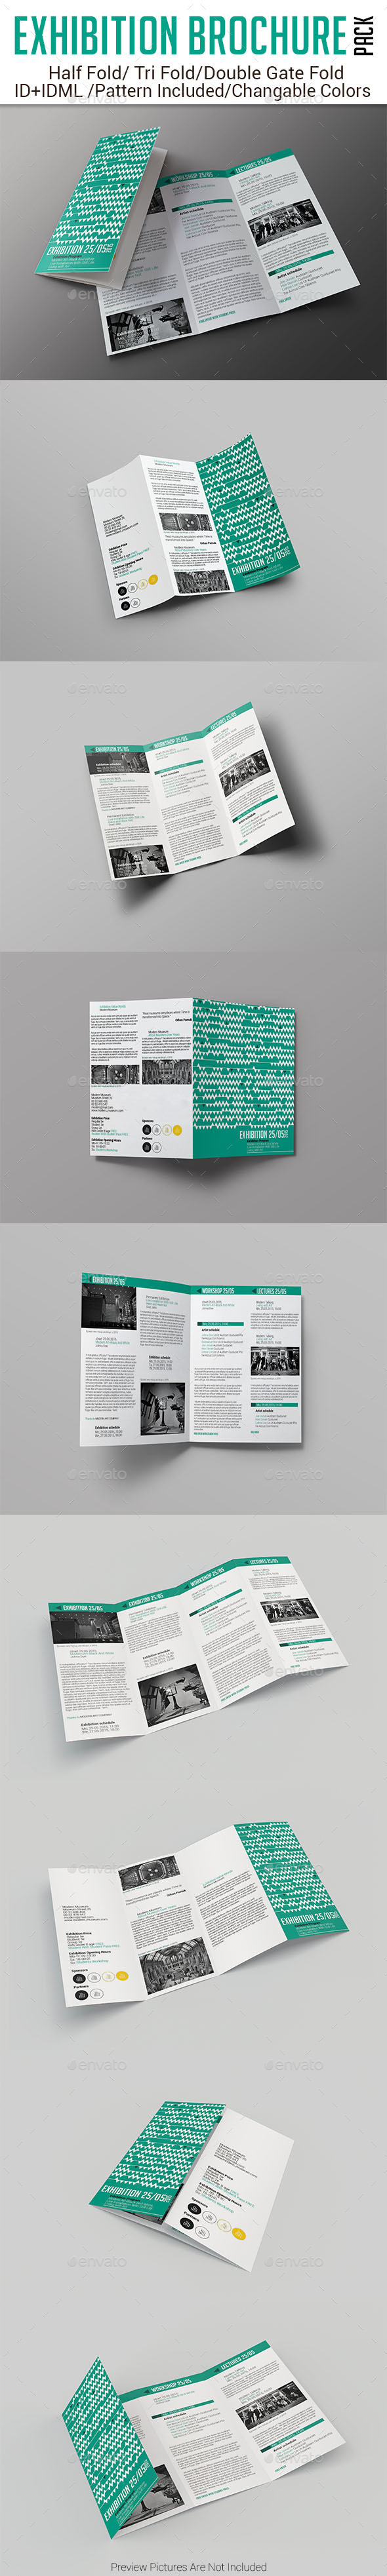 GraphicRiver Exhibition Brochure Pack 11432911